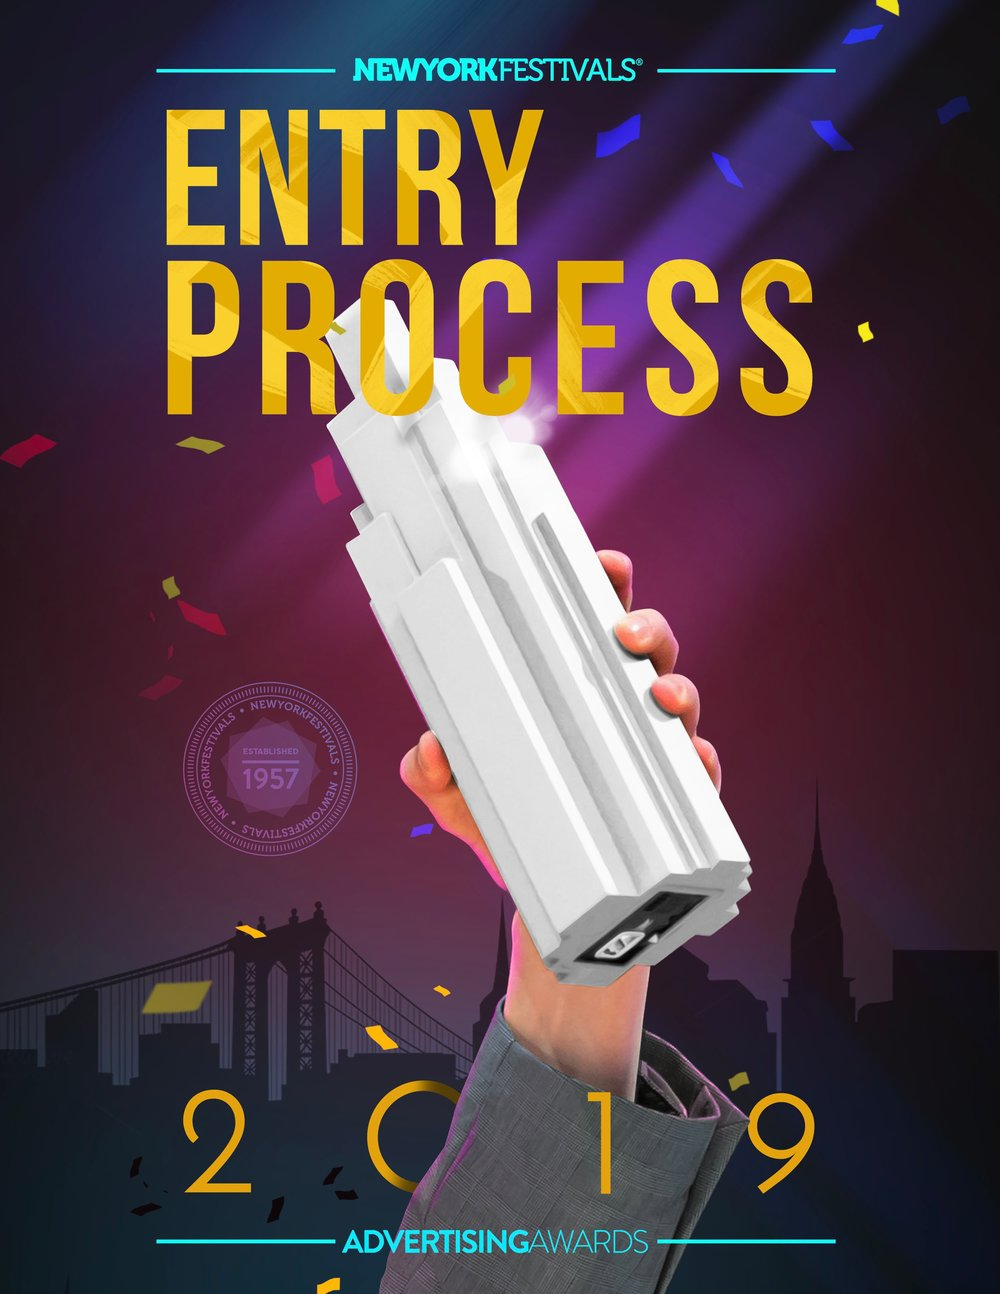 Learn more about our simple, easy entry process. Here we provide screen grabs, and additional information to make your entry process as efficient and fast as possible. -